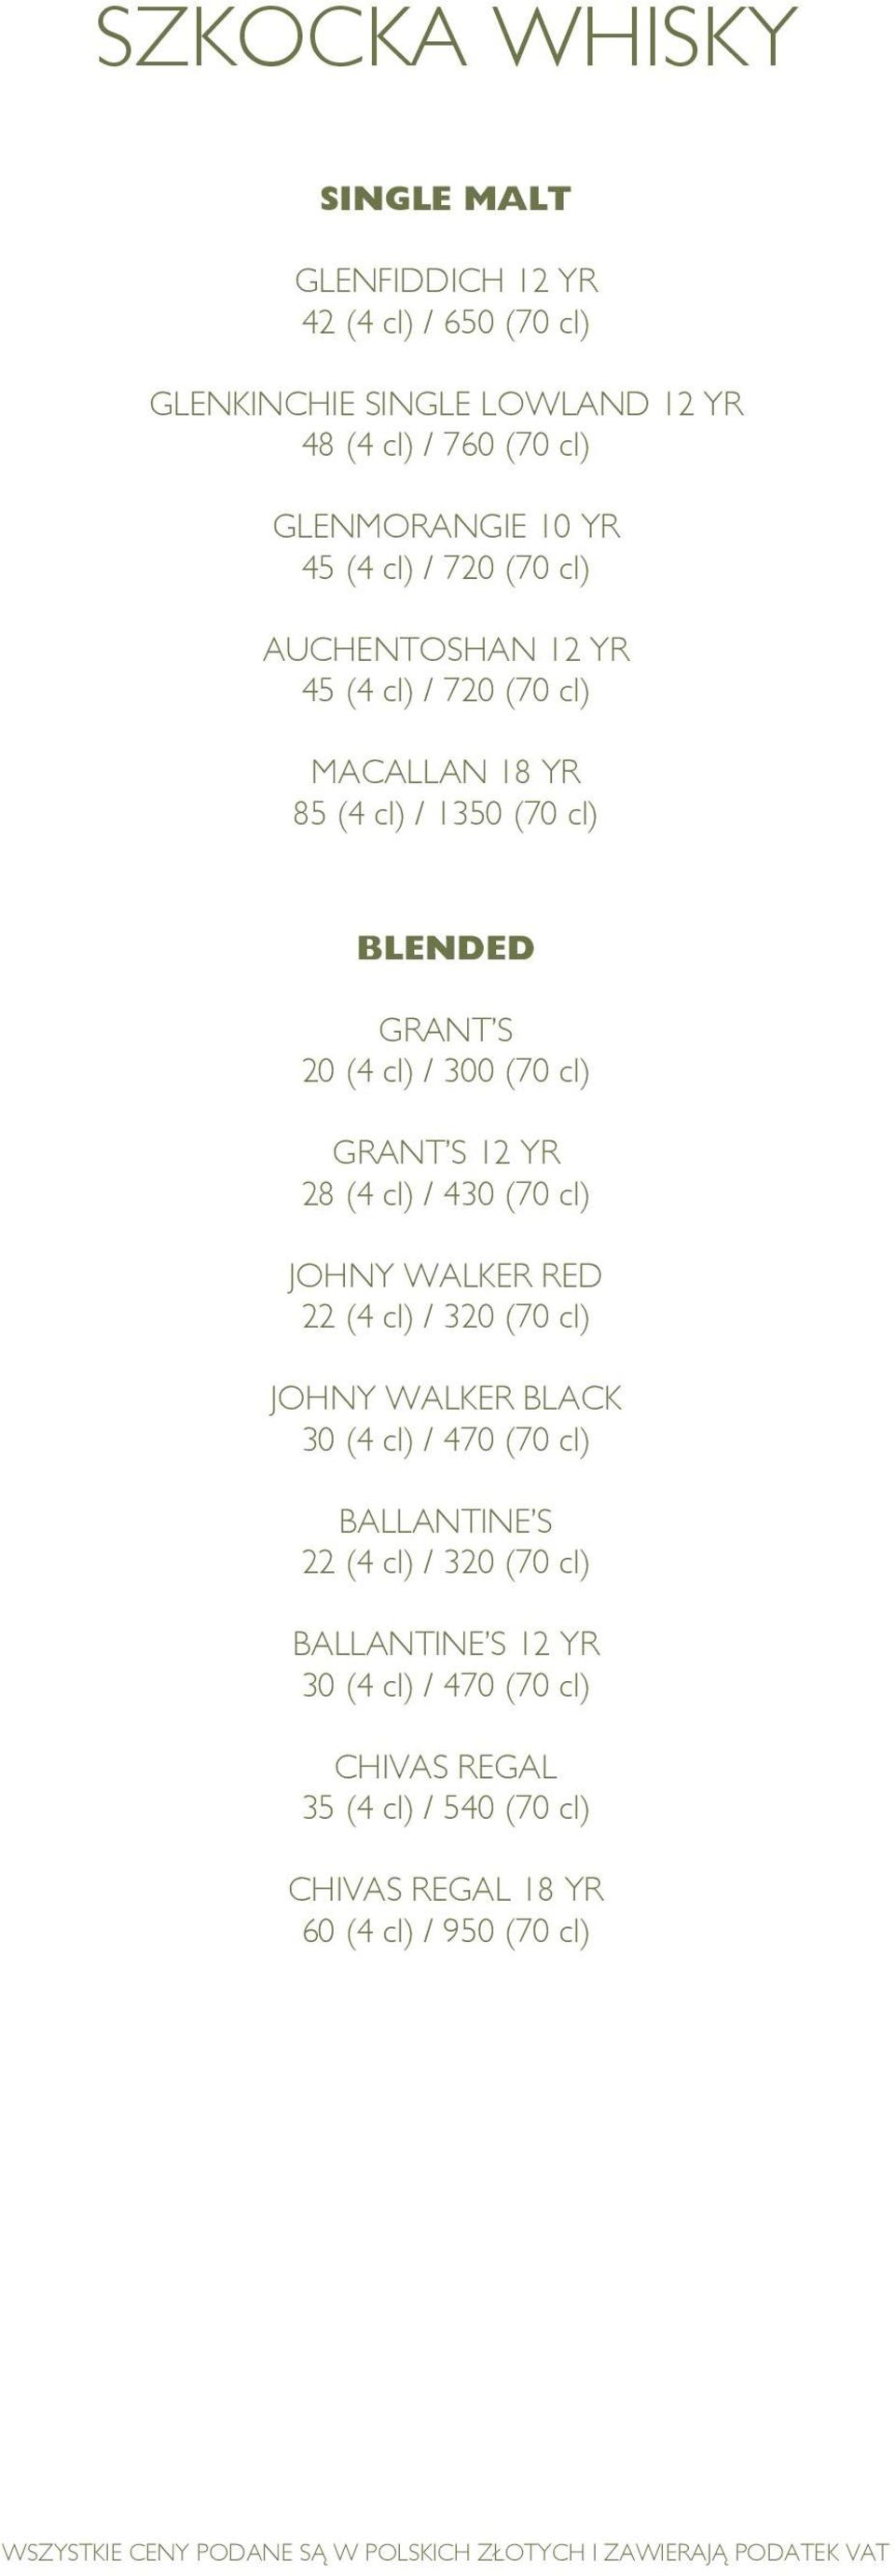 (70 cl) GRANT S 12 YR 28 (4 cl) / 430 (70 cl) JOHNY WALKER RED 22 (4 cl) / 320 (70 cl) JOHNY WALKER BLACK 30 (4 cl) / 470 (70 cl) BALLANTINE S